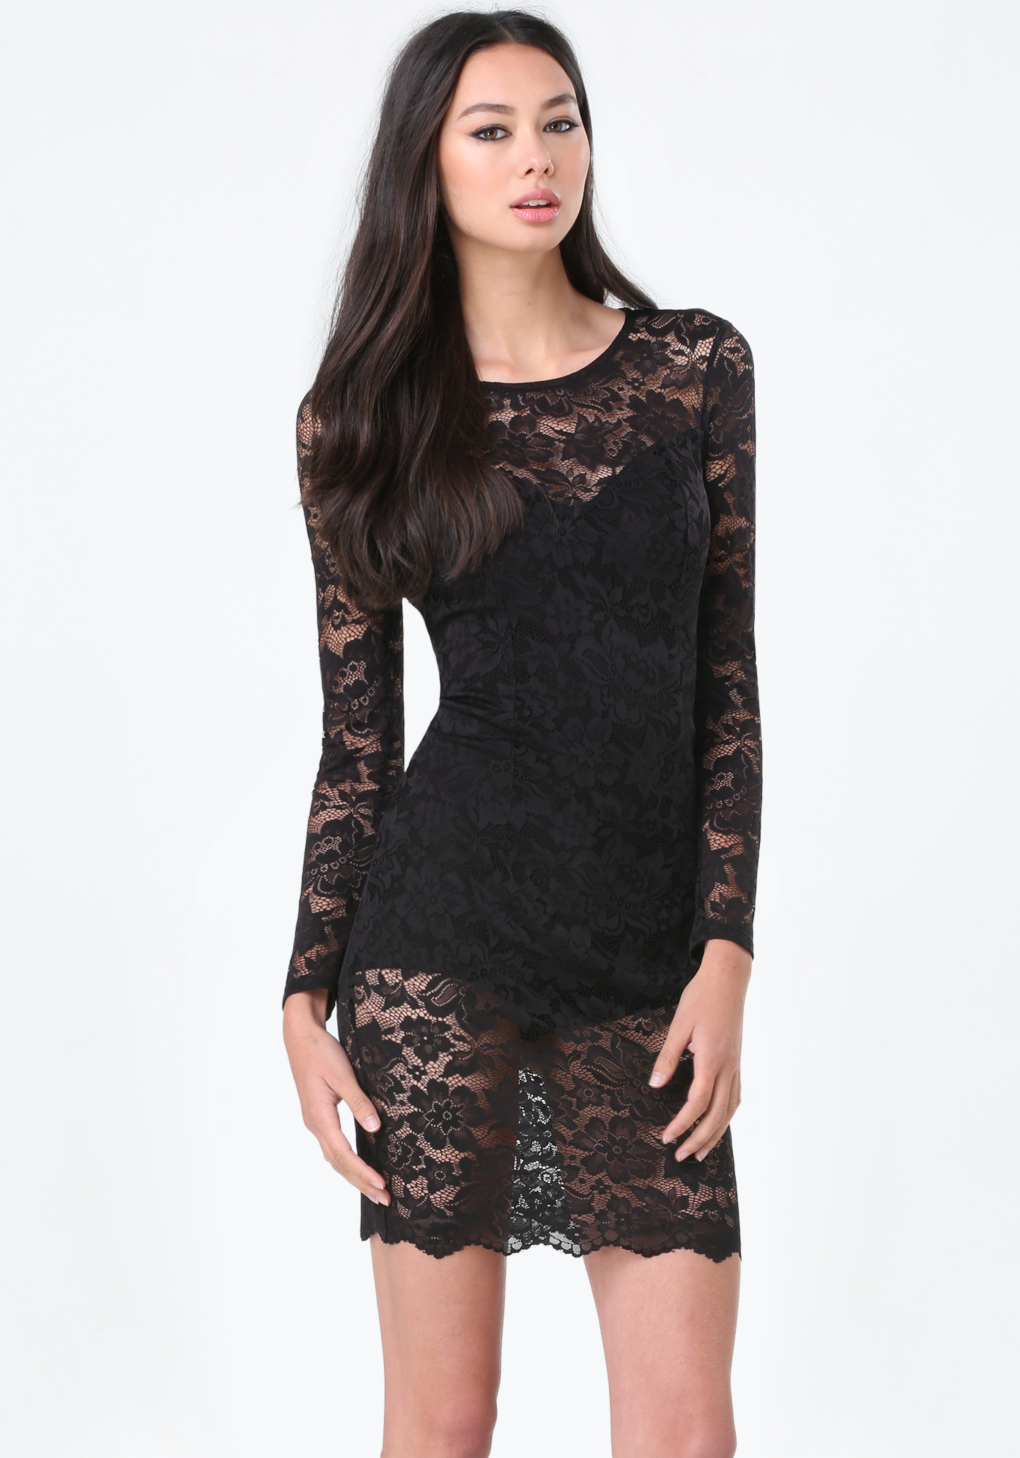 Lyst - Bebe Lace Lingerie Dress in Black